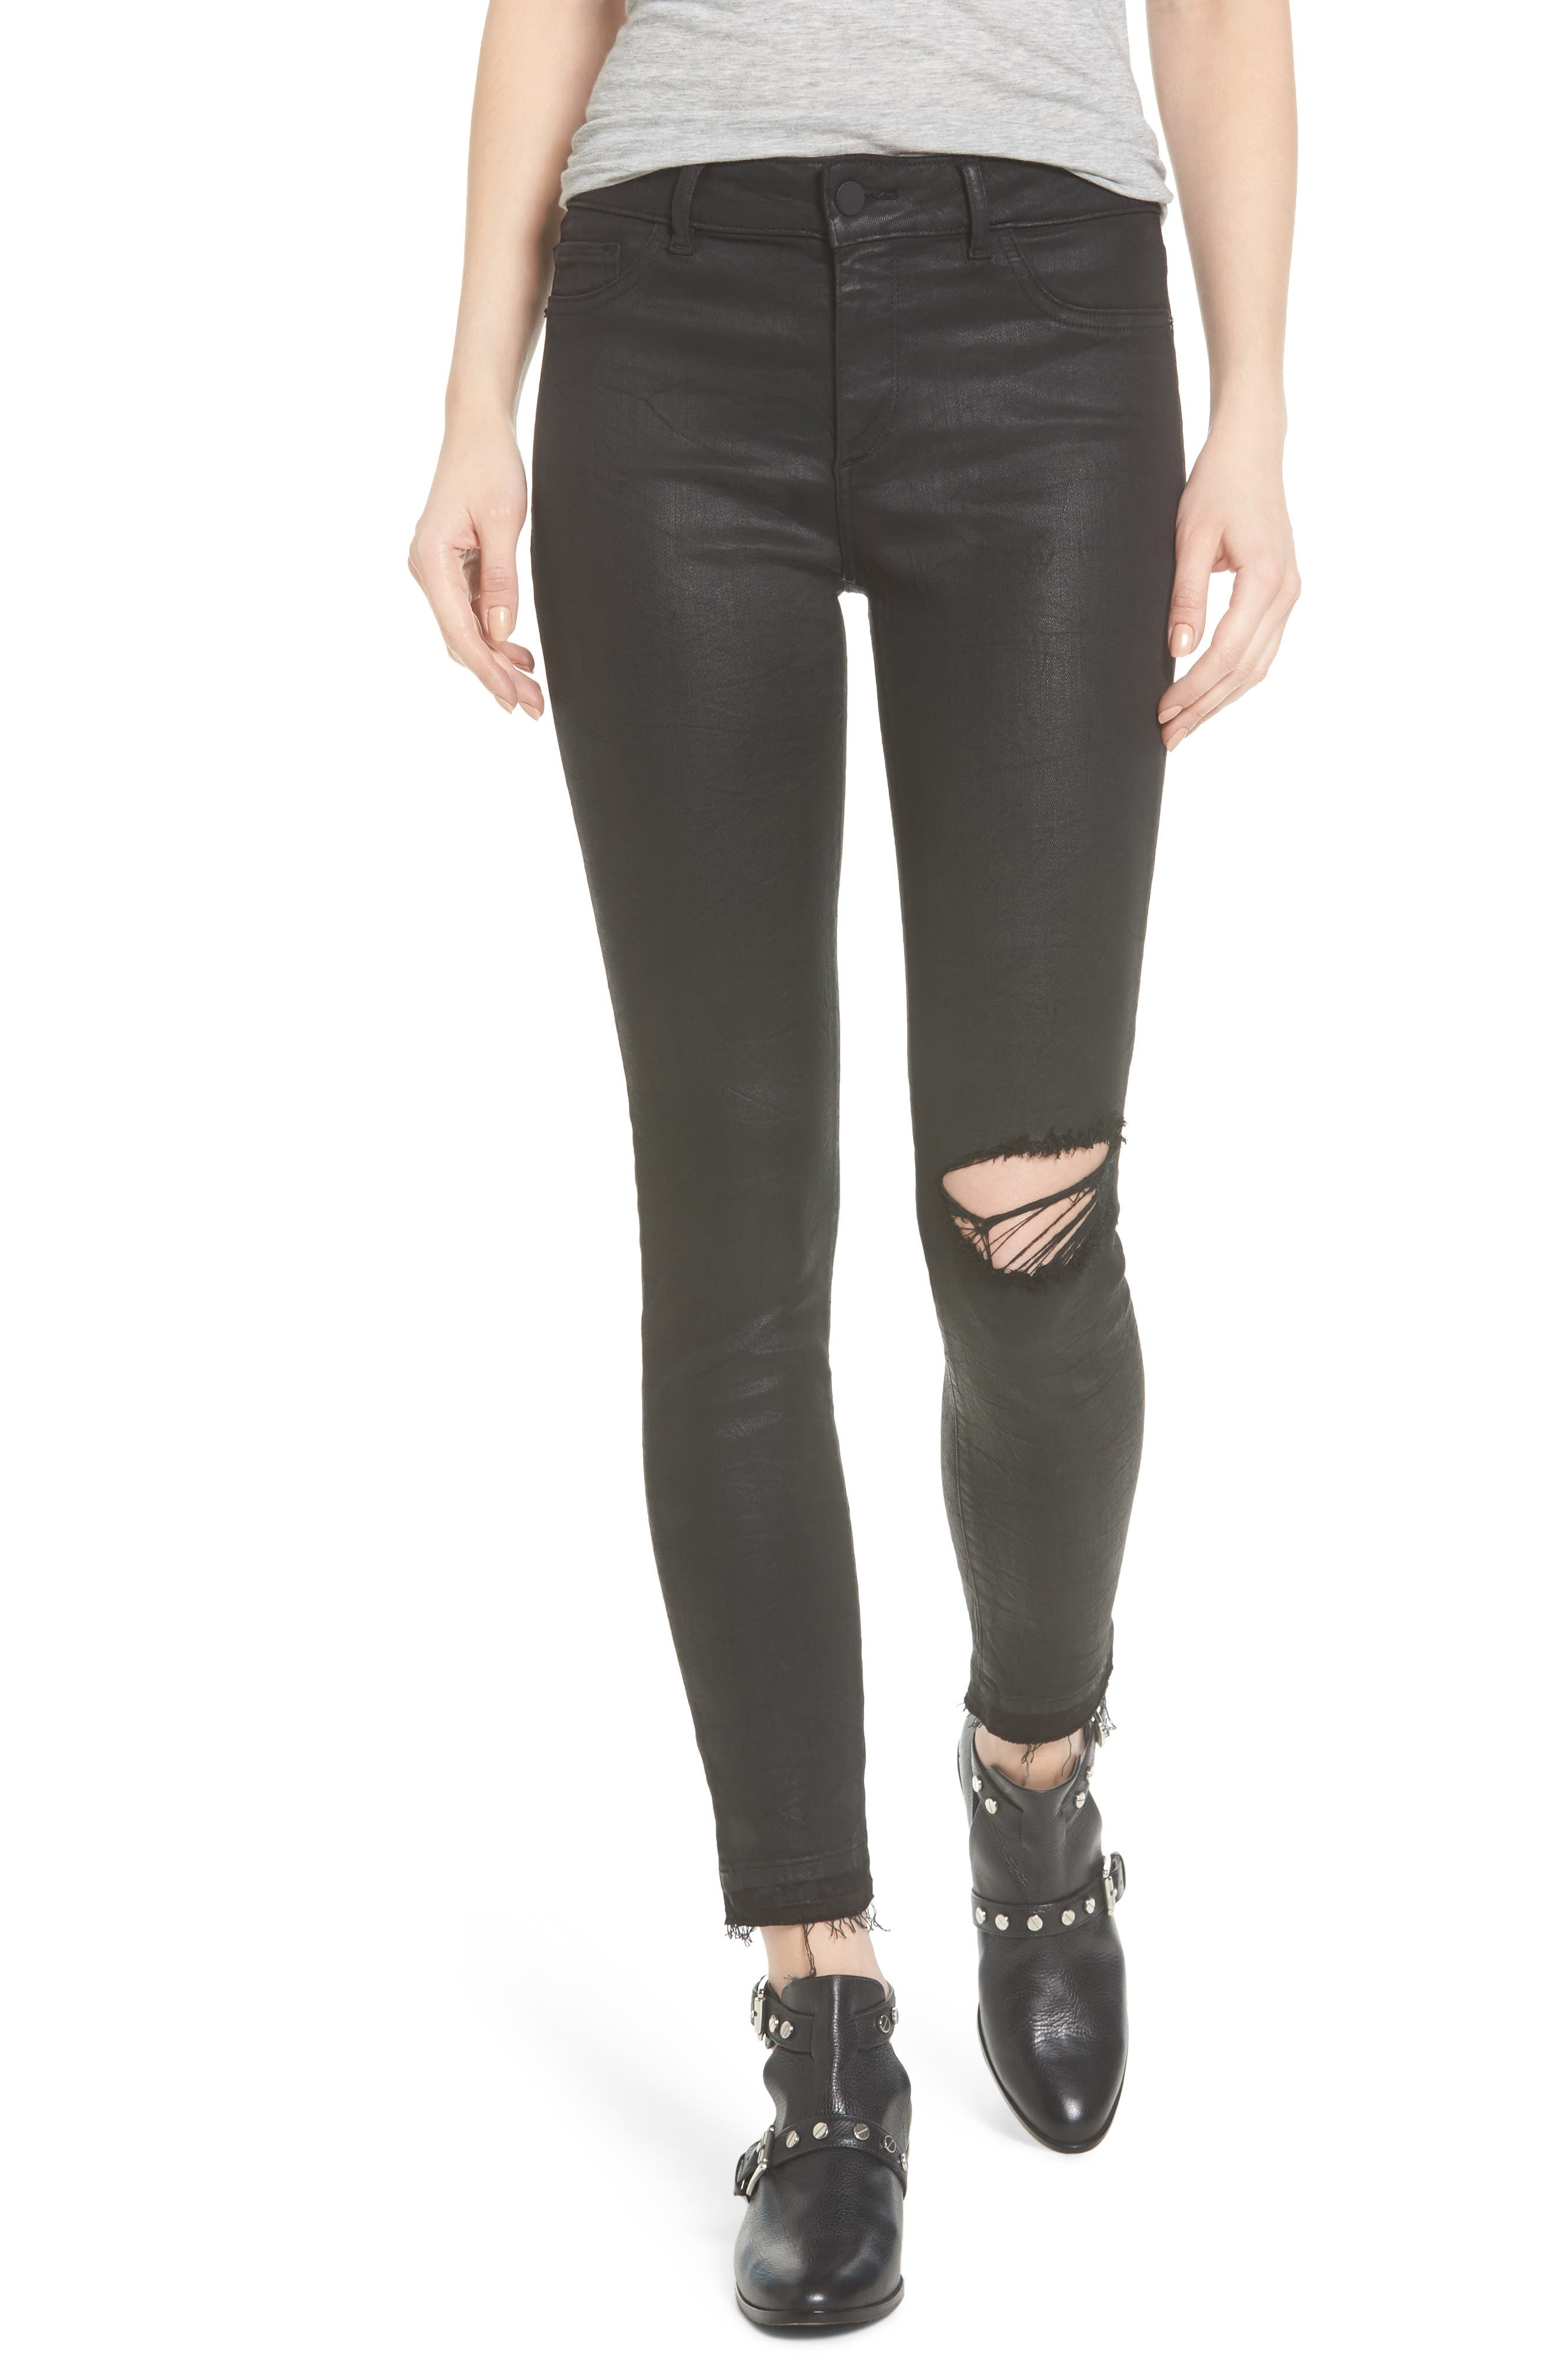 Alternate Image 1 Selected - DL1961 Margaux Instasculpt Ankle Skinny Jeans (Habasu)